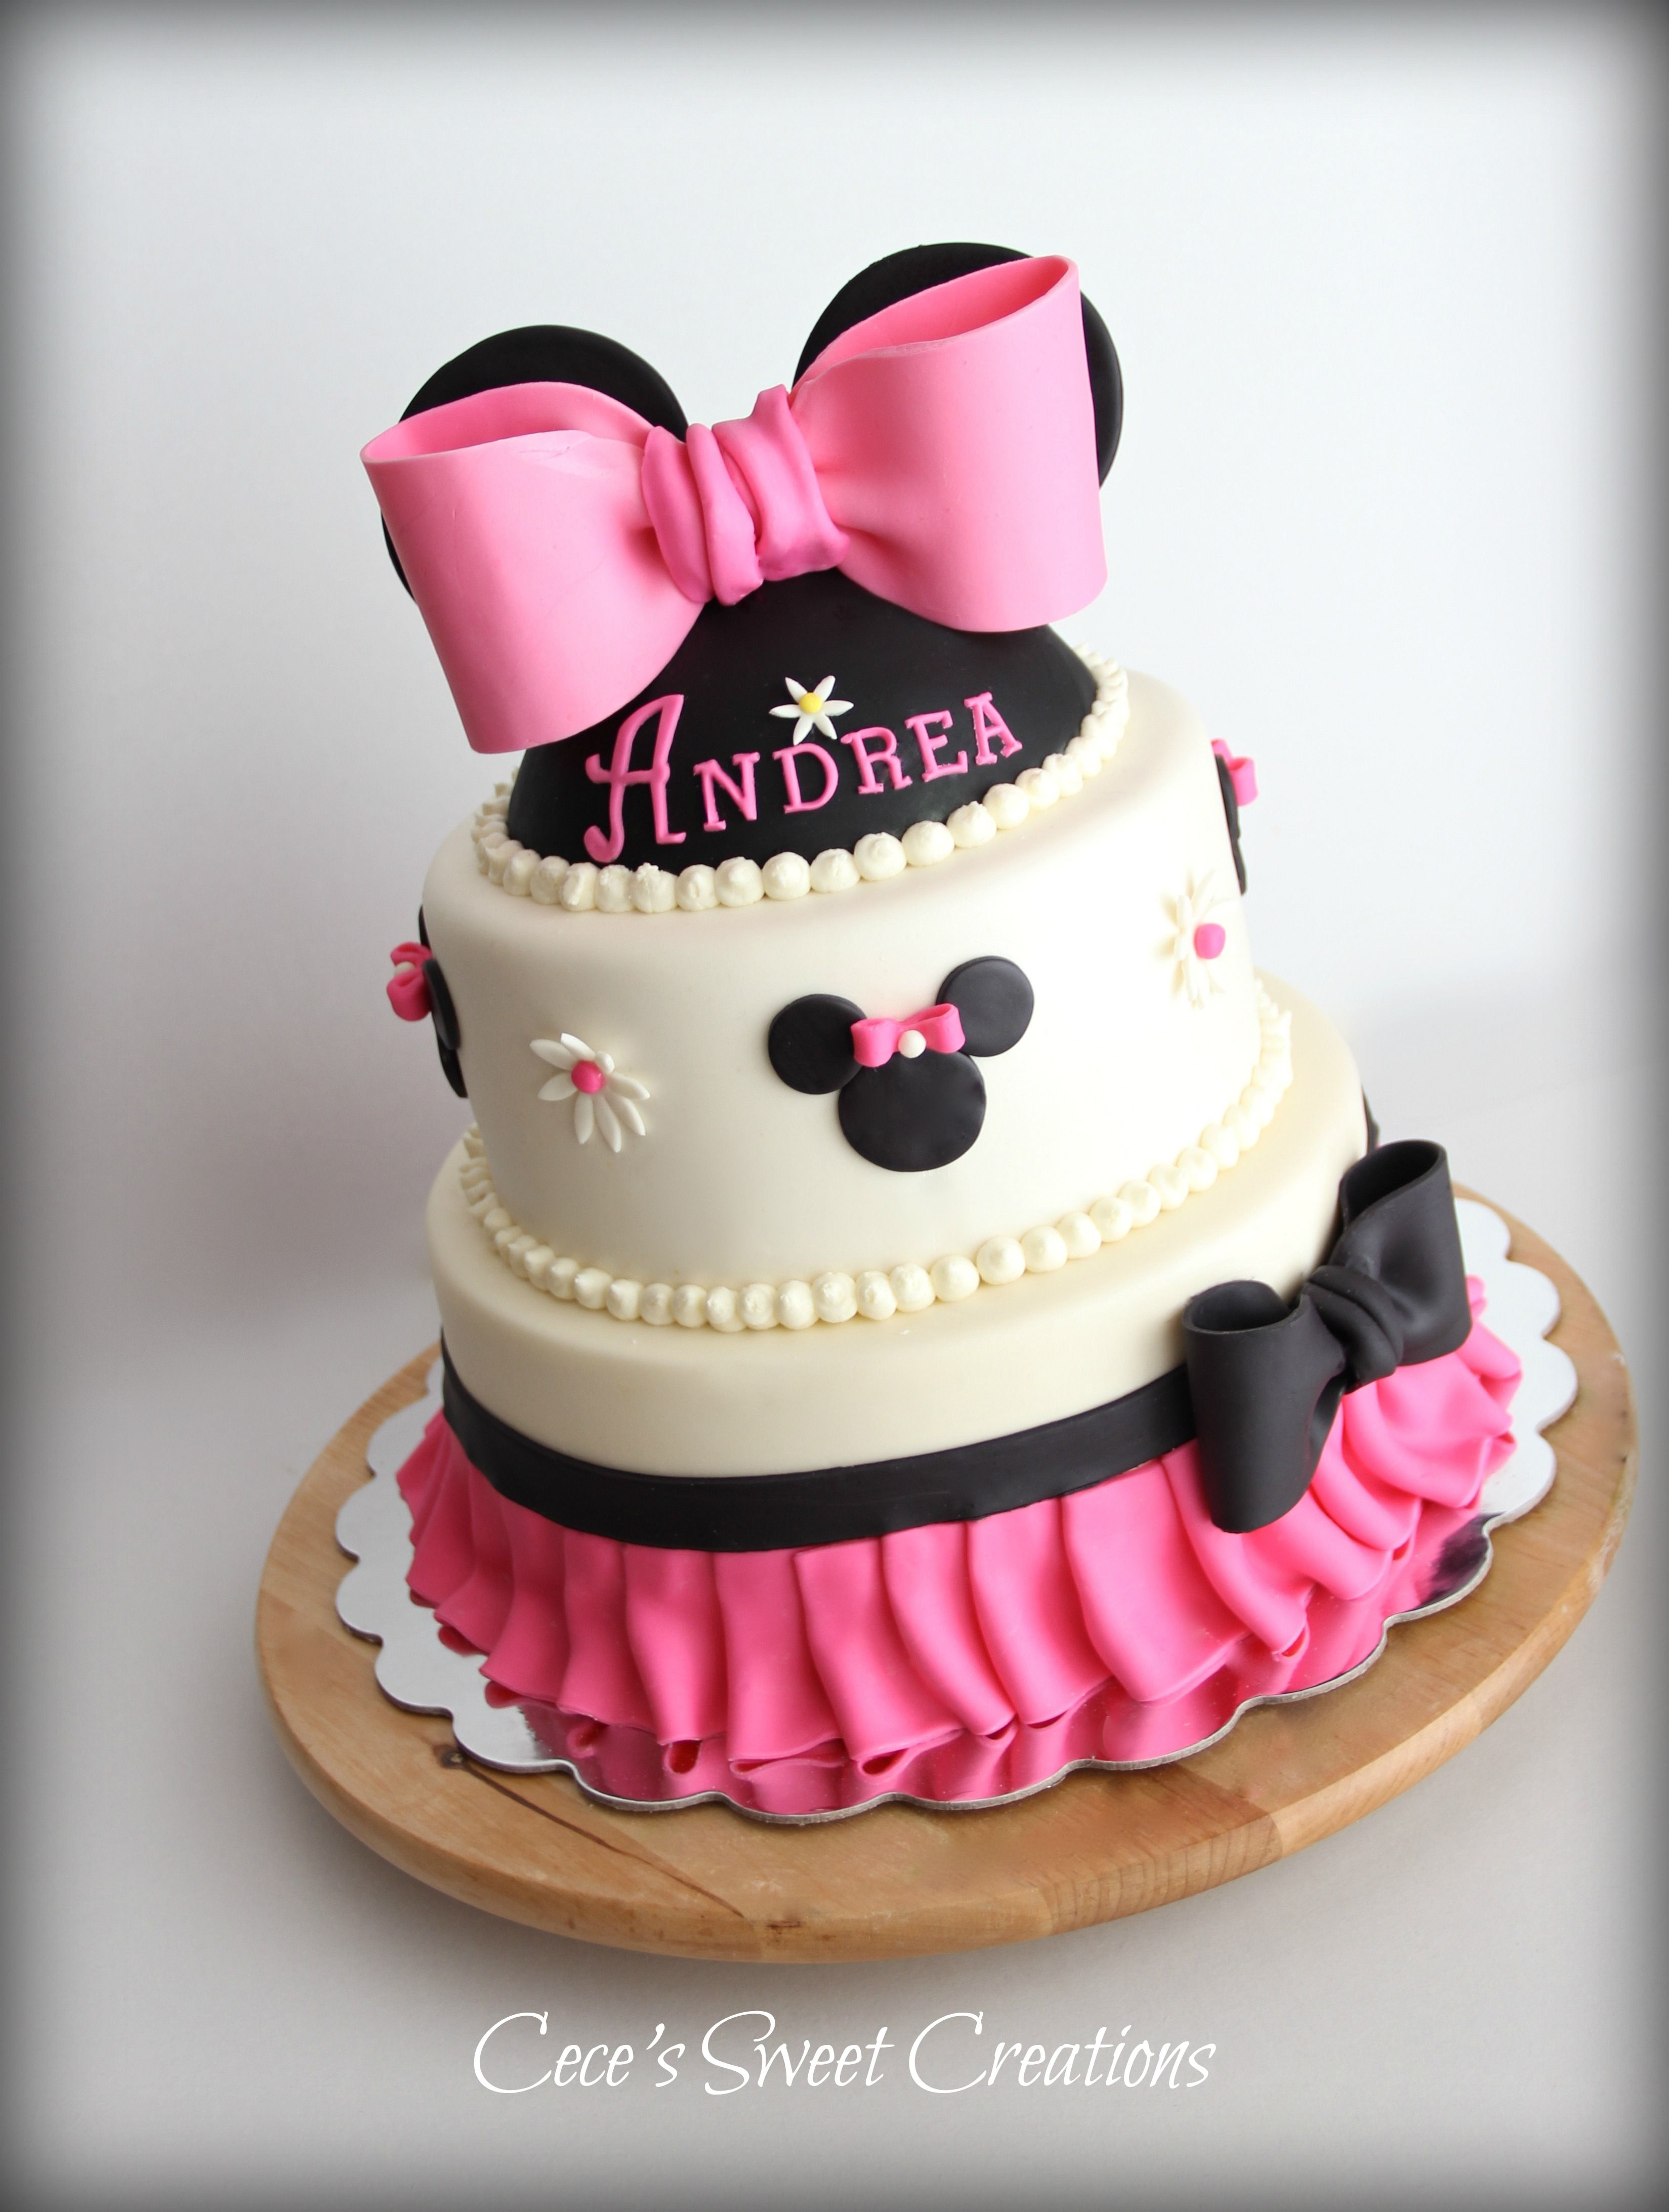 Minnie Mouse Birthday Cake All is edible Inspired by the many beautiful creations of